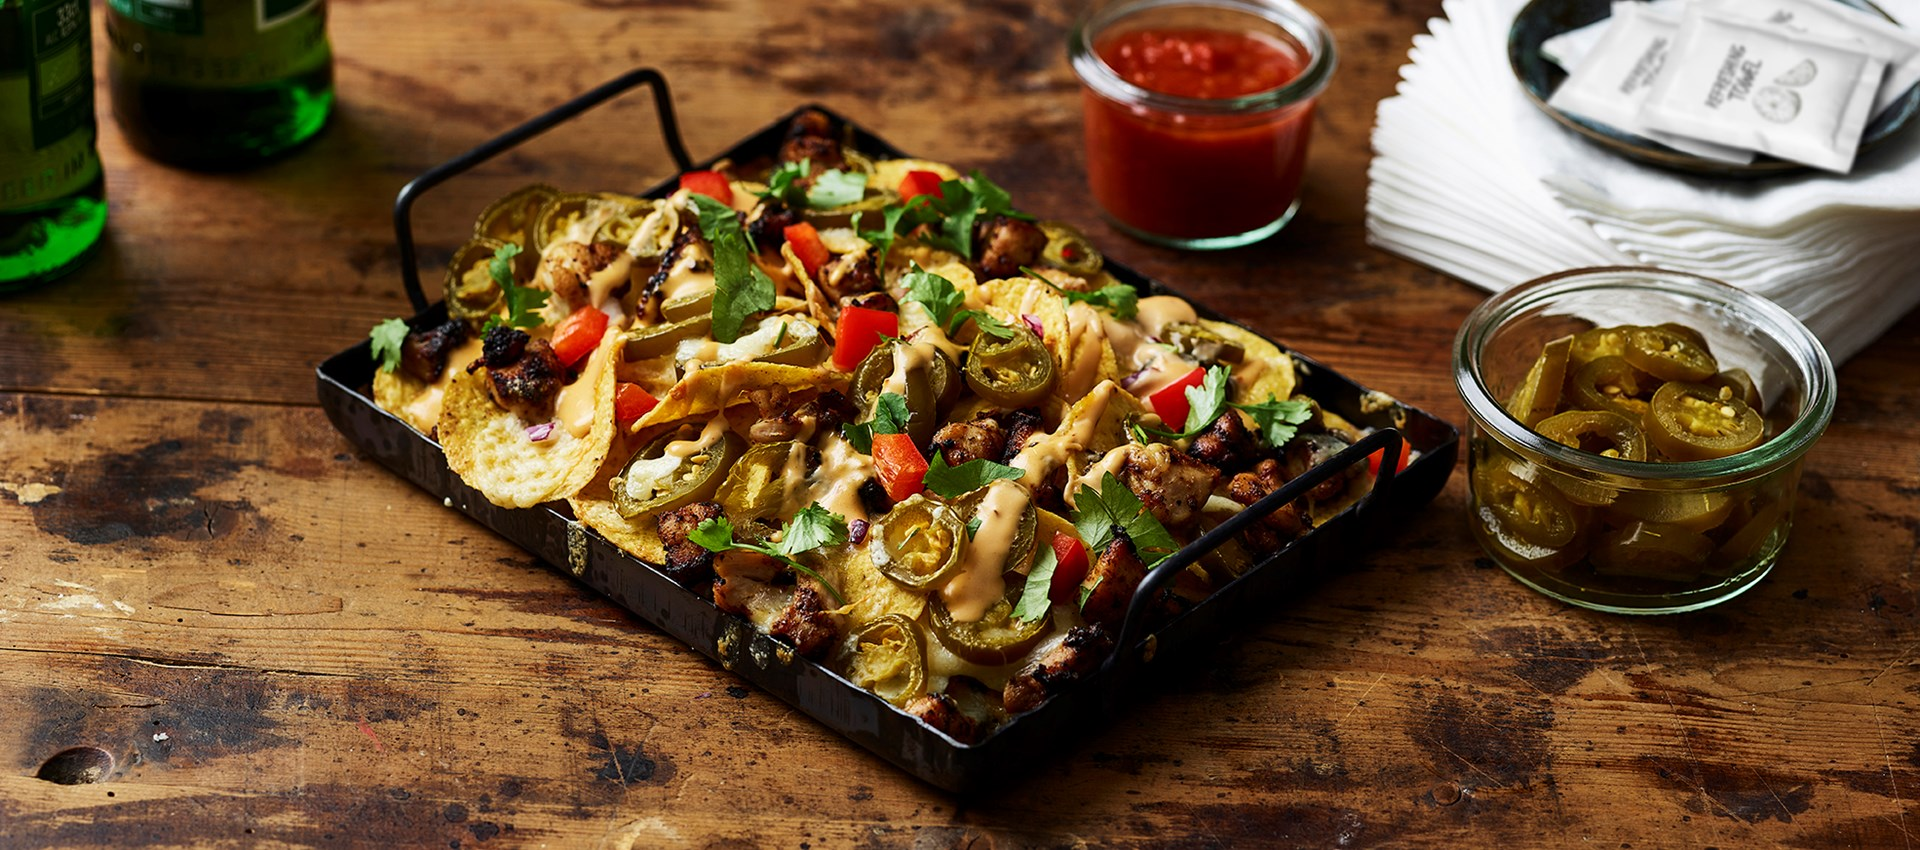 Loaded nachos met chipotle chicken